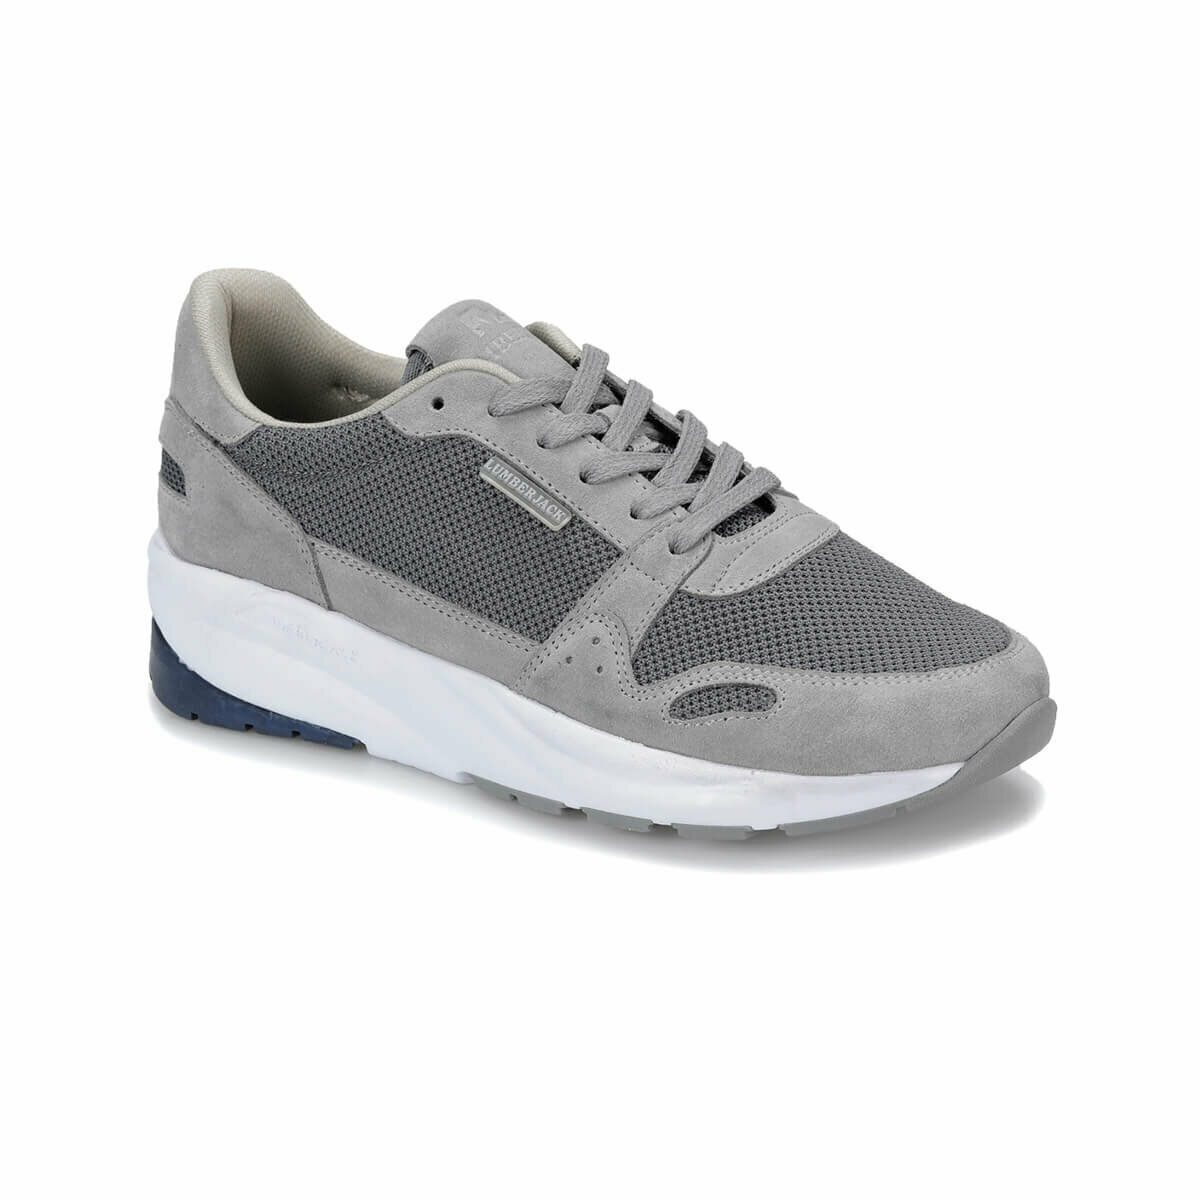 FLO GILBERT Gray Men 'S Sneaker Shoes LUMBERJACK